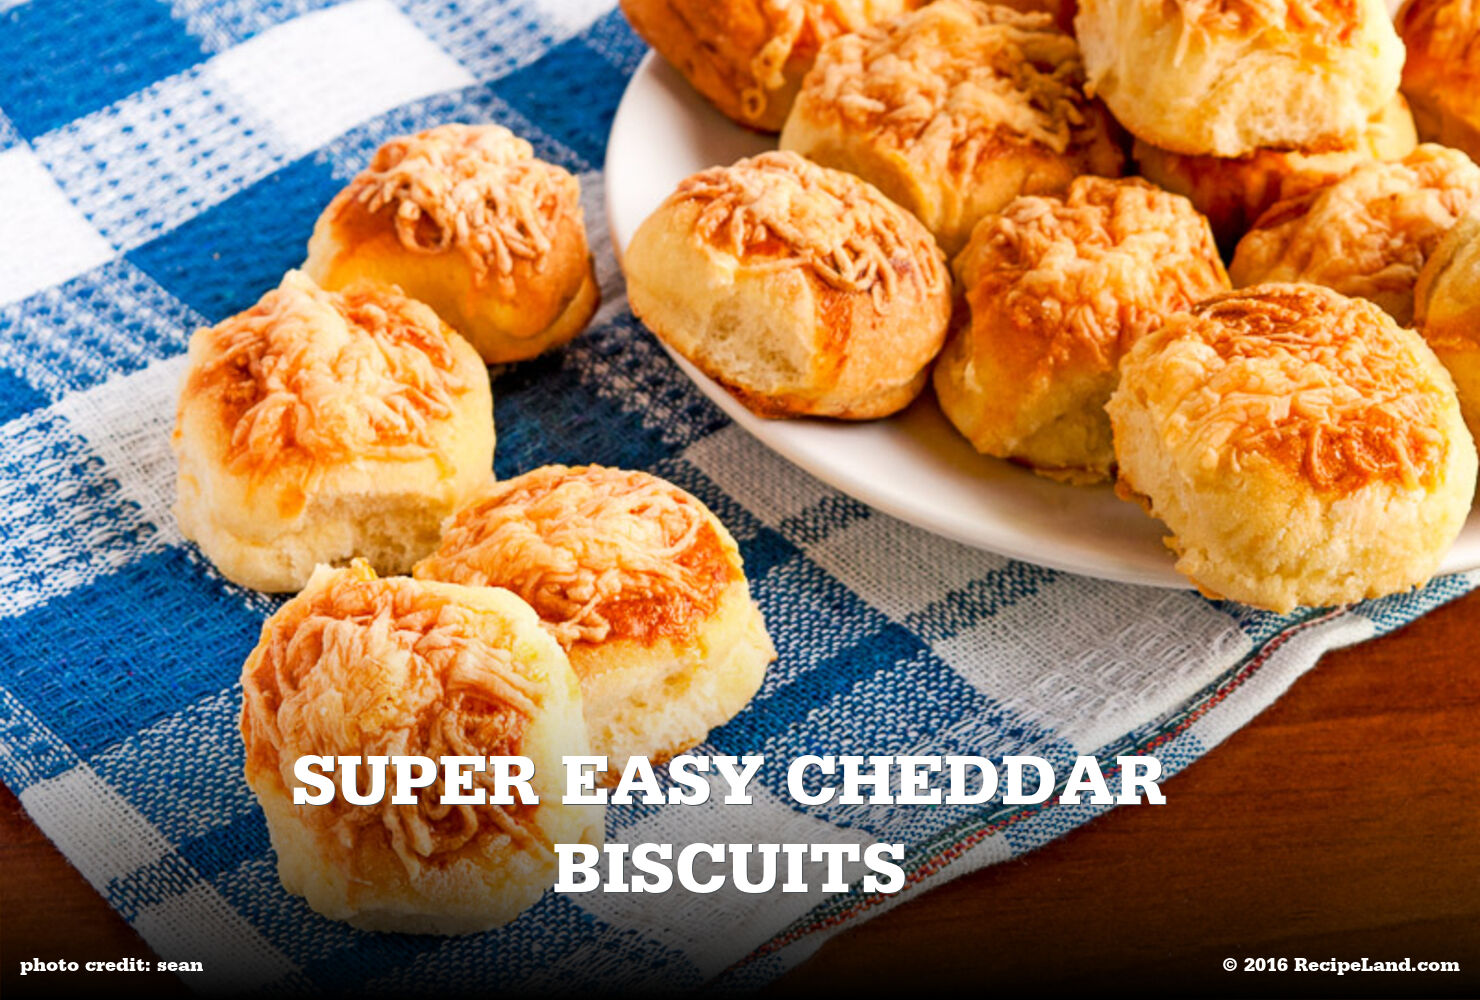 Super Easy Cheddar Biscuits